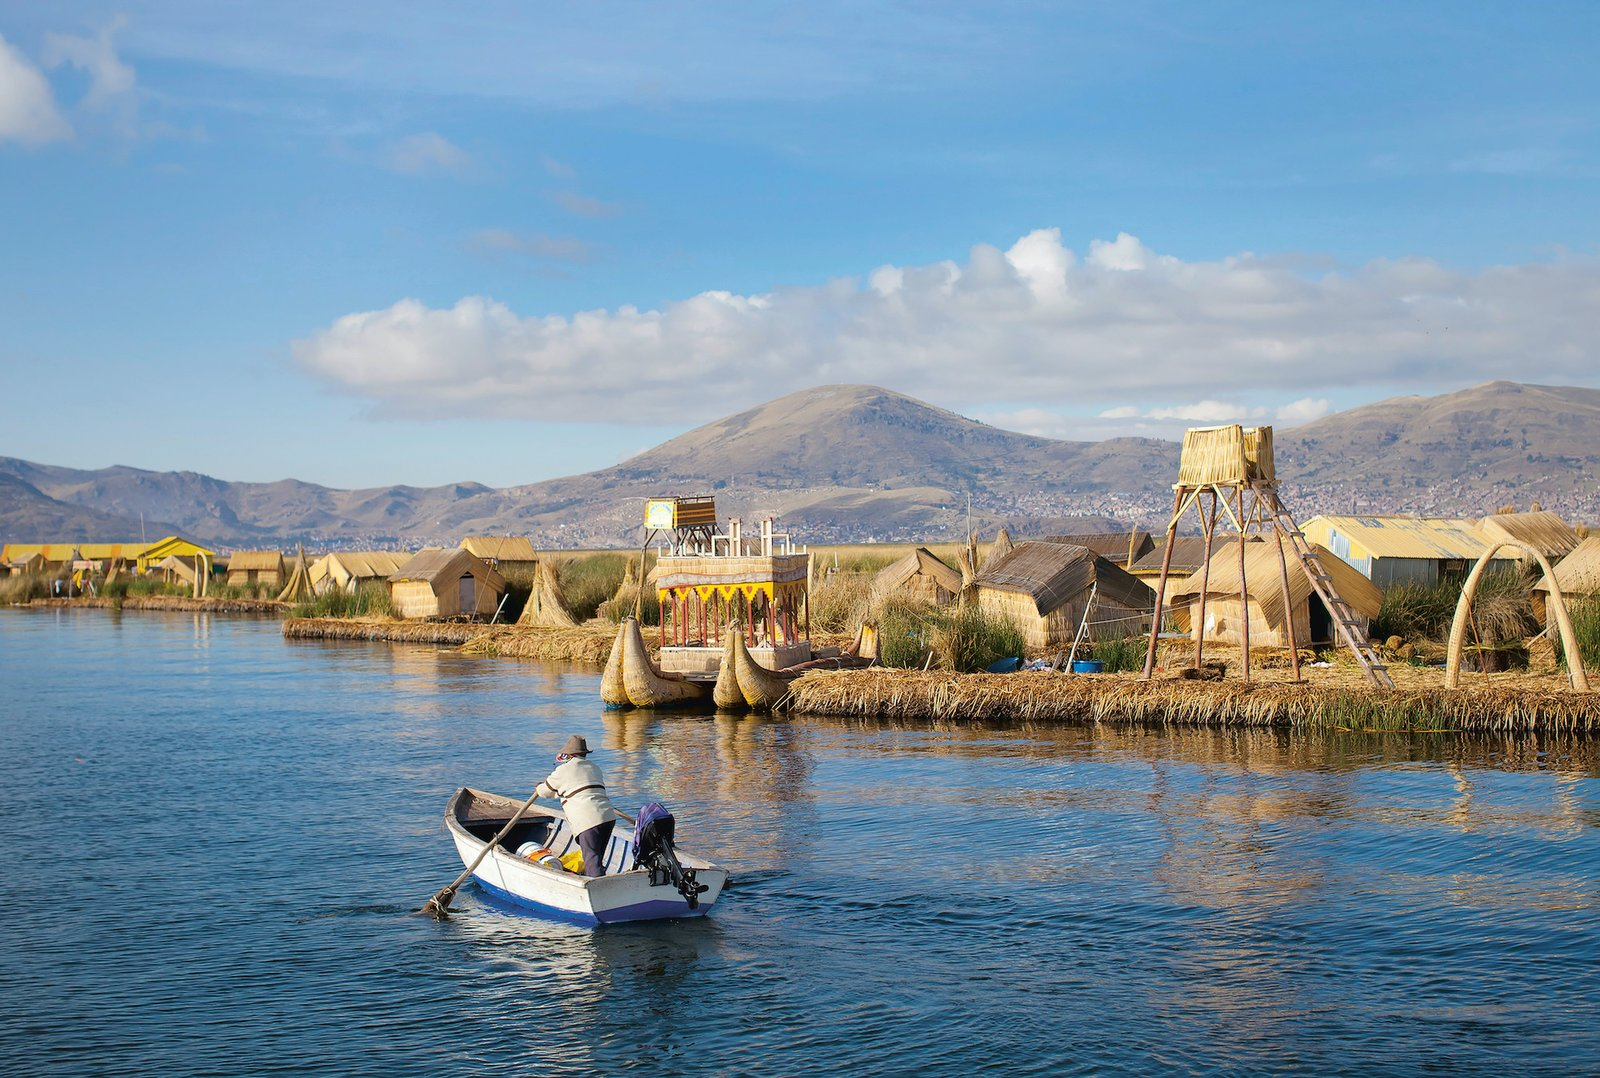 2,629 people live in a group on 91 floating islands, and individual islands are inhabited by up to 12 families. While they live isolated on Lake Titicaca, the Uros islands are located only three miles from the small port city of Puno in Peru.  Photo 8 of 8 in We May Already Have the Technology to Survive a Climate Crisis—We've Just Been Ignoring It